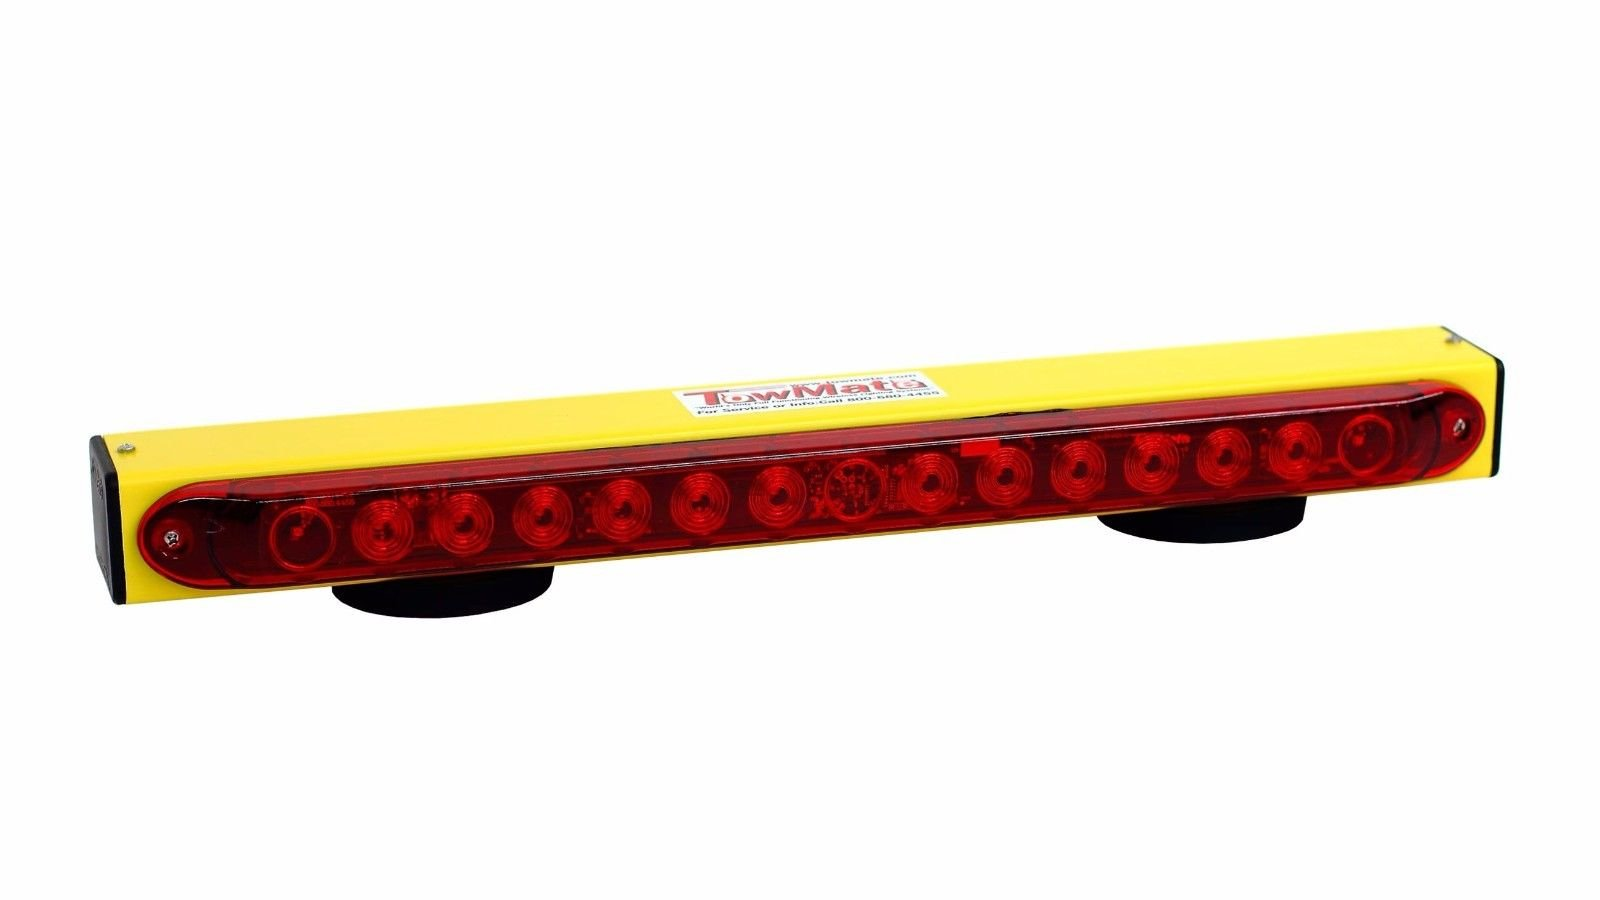 BA Products New! Towmate Yellow Sun Light TM22Y-7RV, TM22Y 7 Way RV Flat Blade Style Transmitter, 22'' Wireless Tow Light with LED Stop, Tail, Turn, Sunlight by BA Products